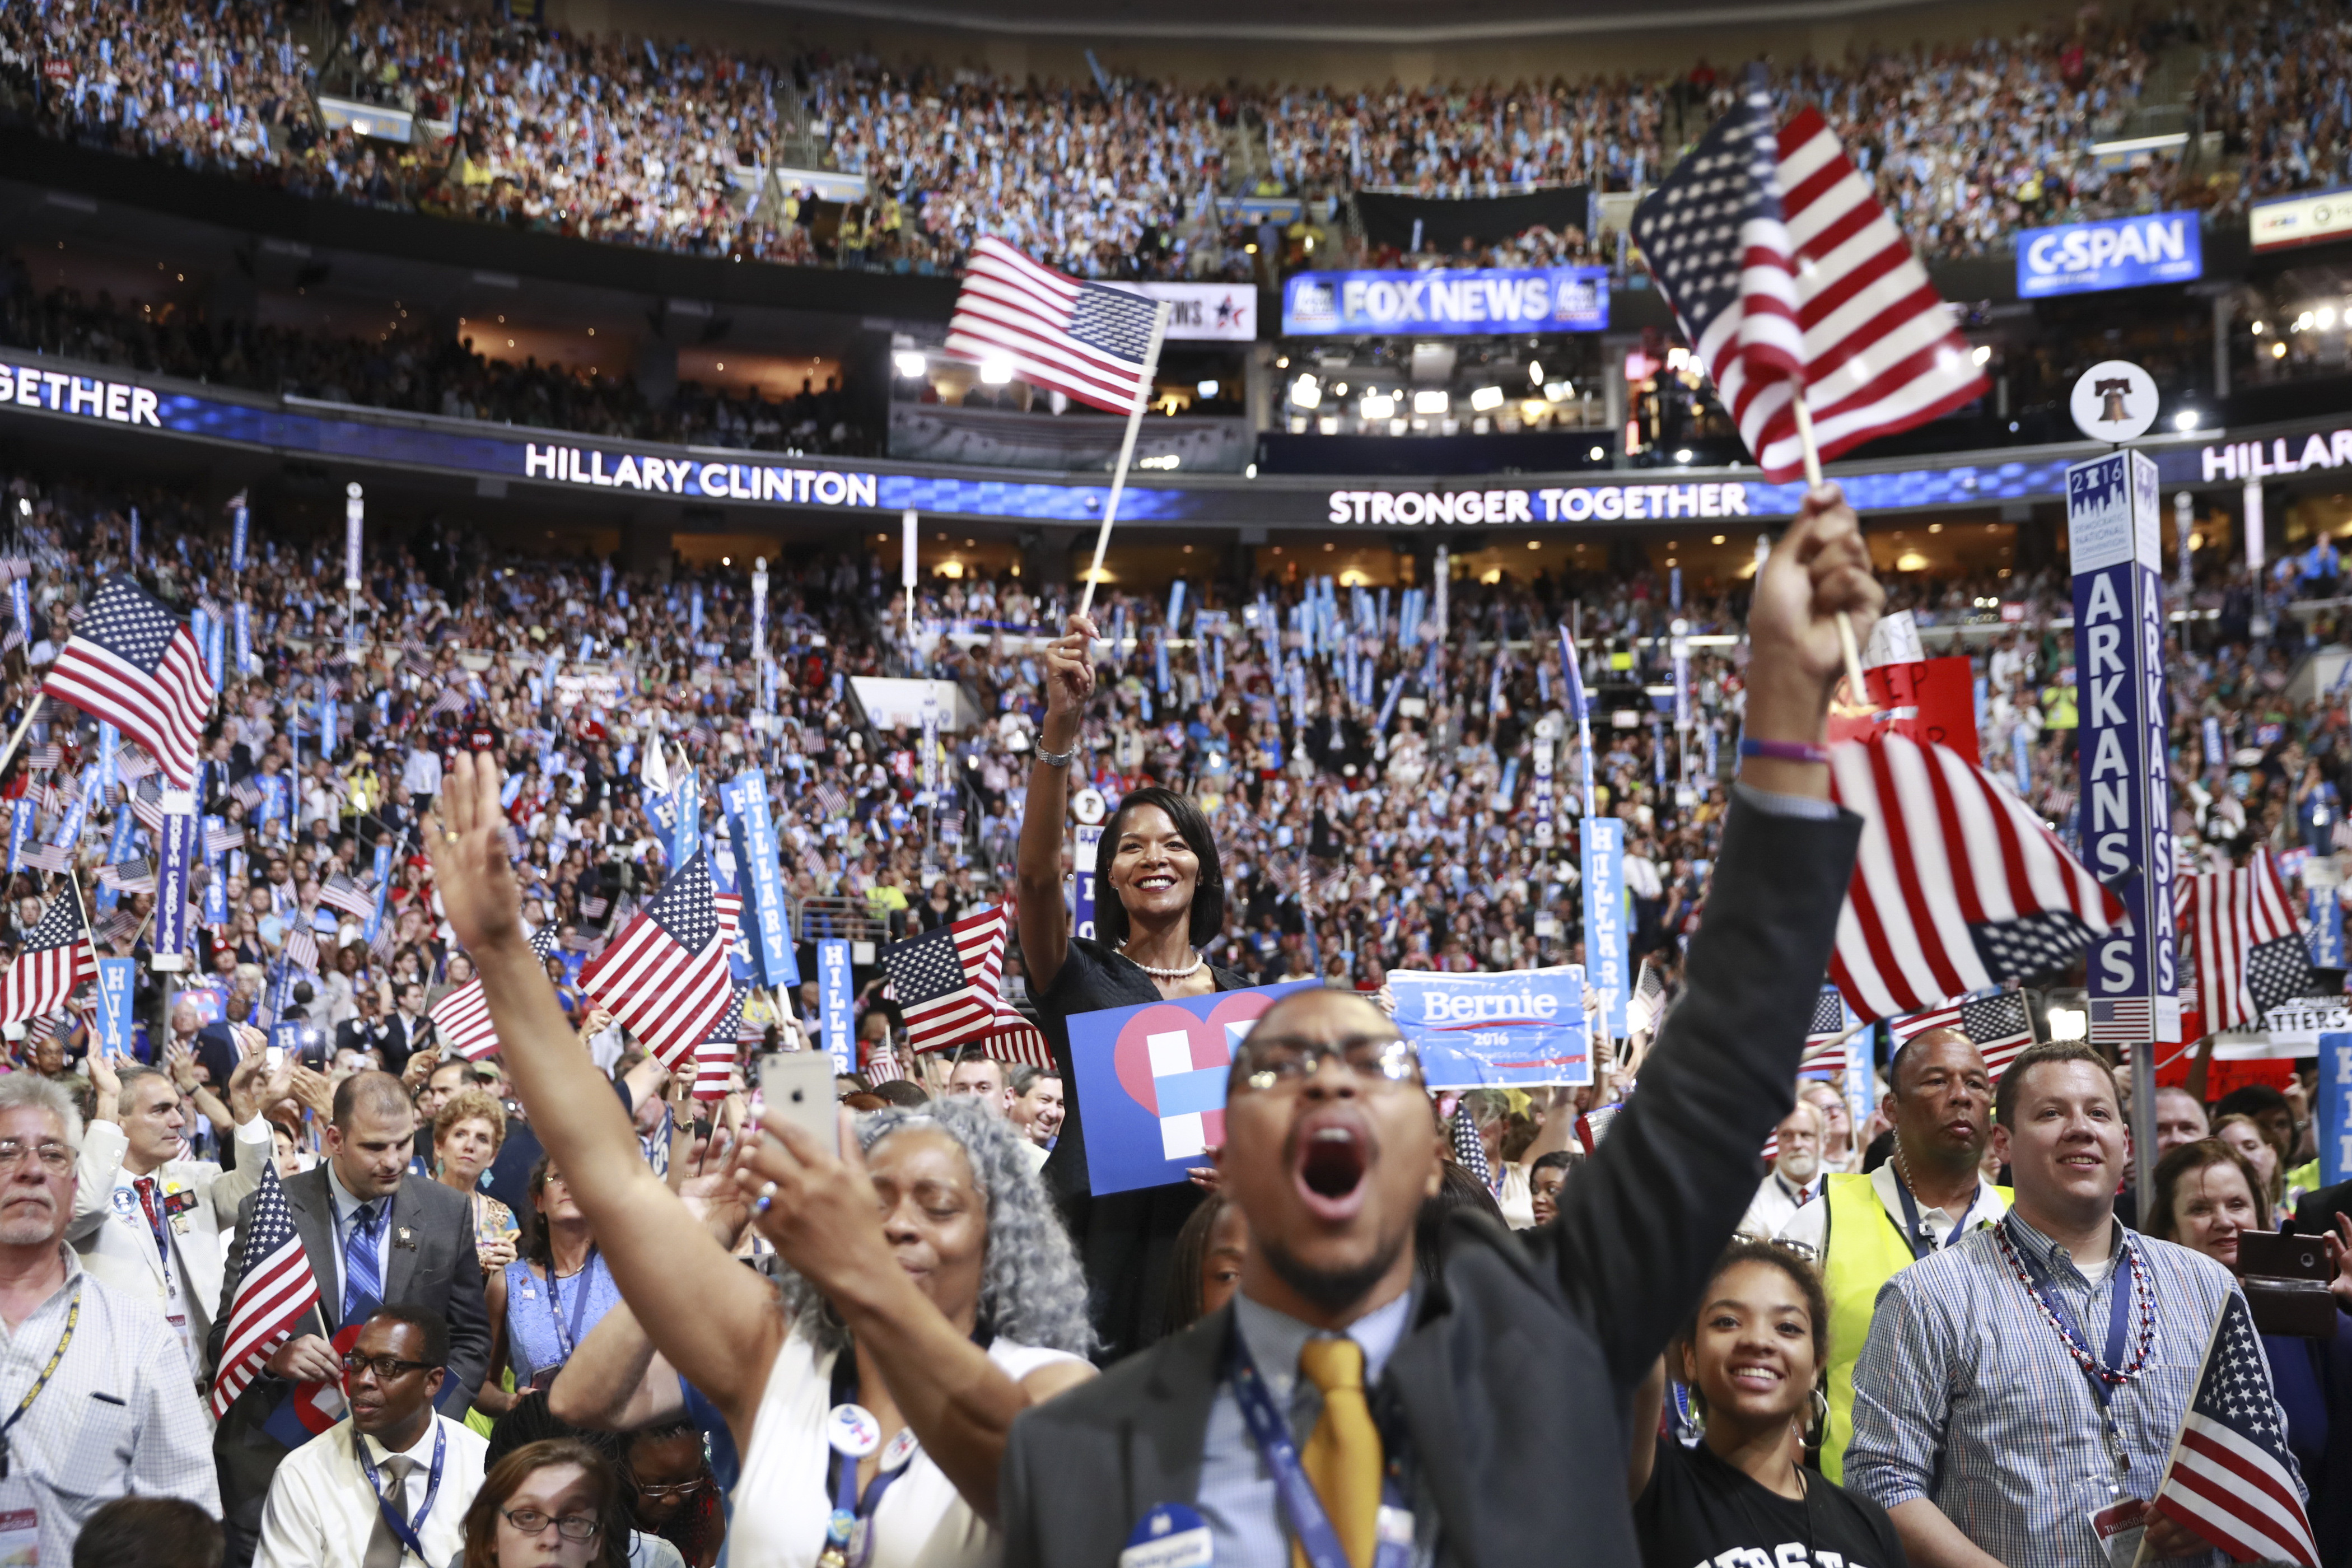 A diverse crowd cheers as Hillary Clinton accepts the Democratic presidential nomination on July 28 in Philadelphia. (Damon Winter/New York Times)